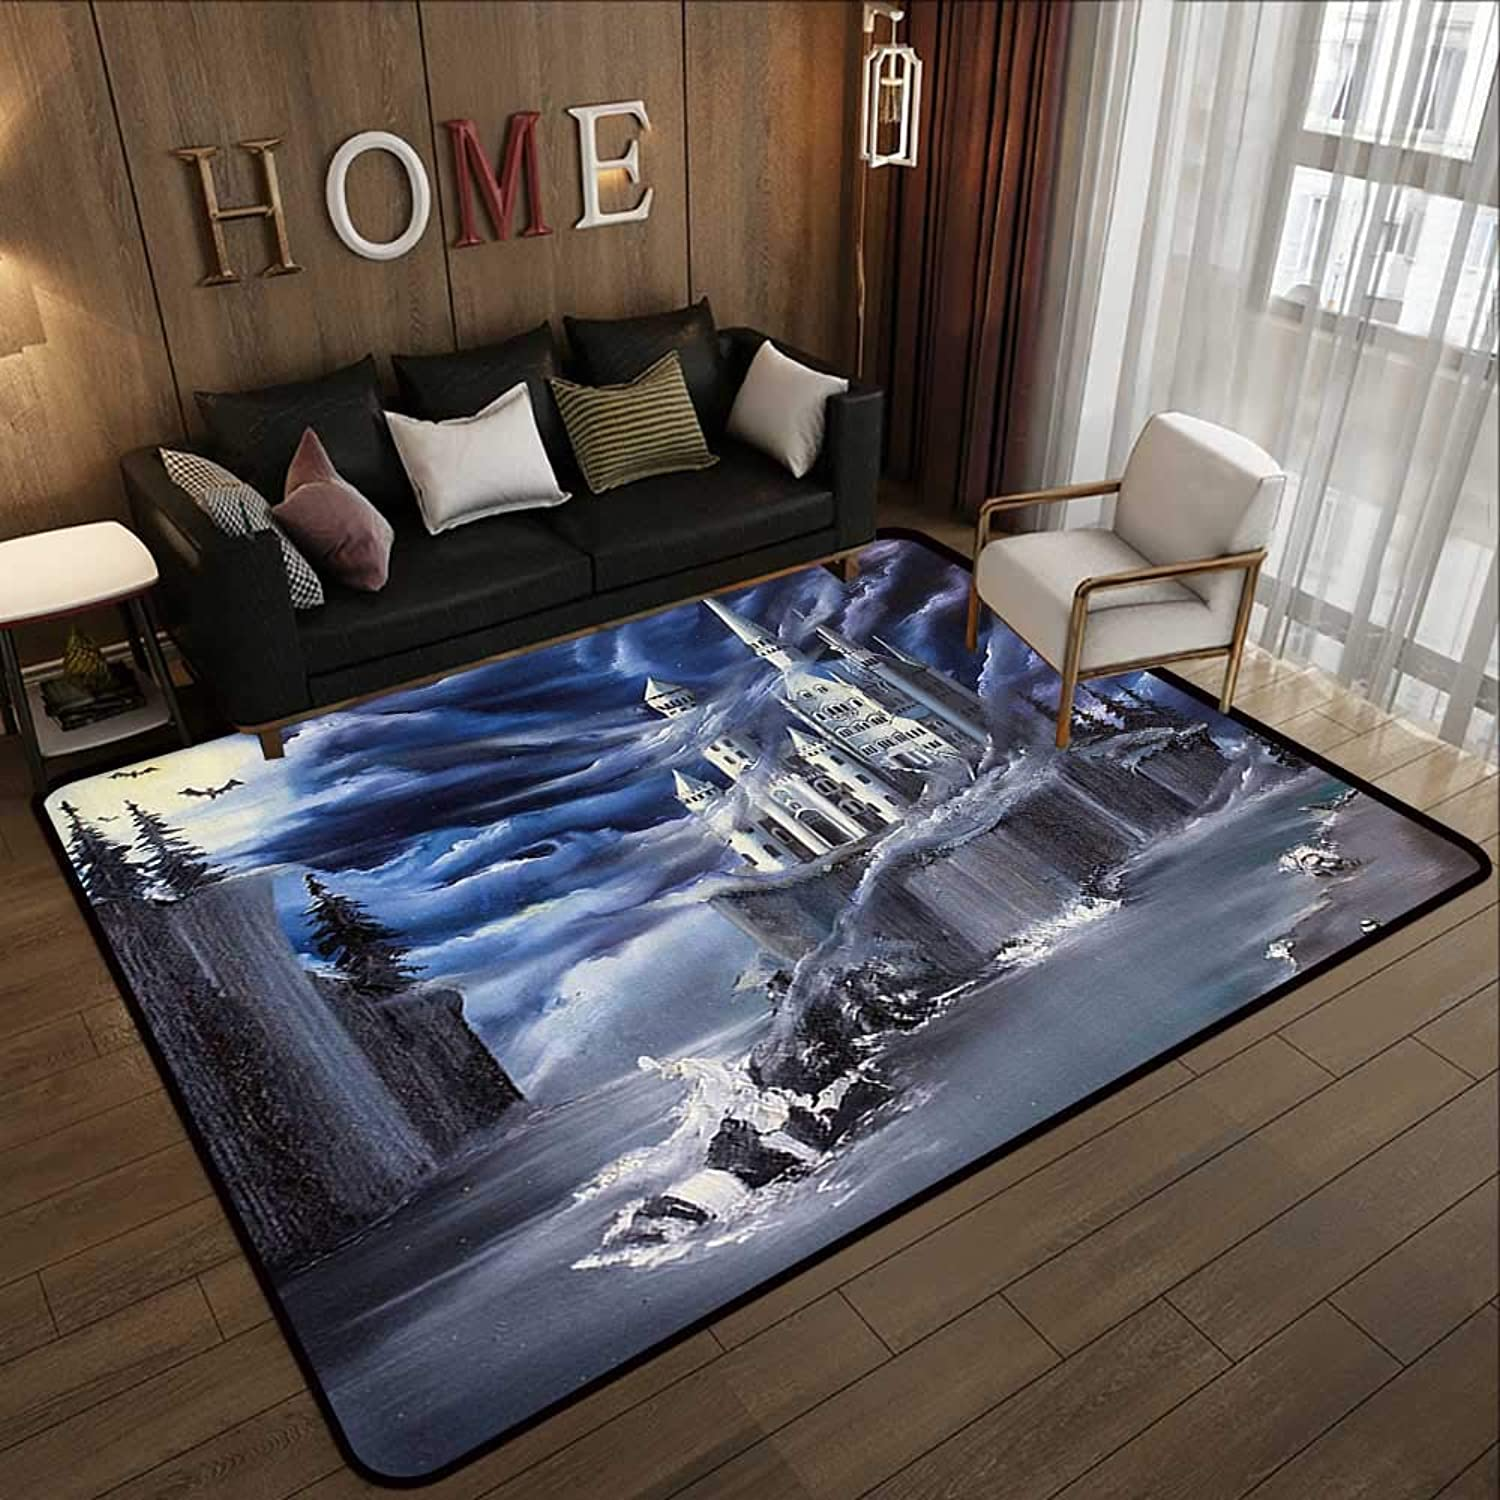 Carpet mat,Fantasy,Island with Ancient Castle Full Moon Cloudy Dramatic Sky Foggy Weather,Dark bluee Grey White 59 x 71  Floor Mat Entrance Doormat